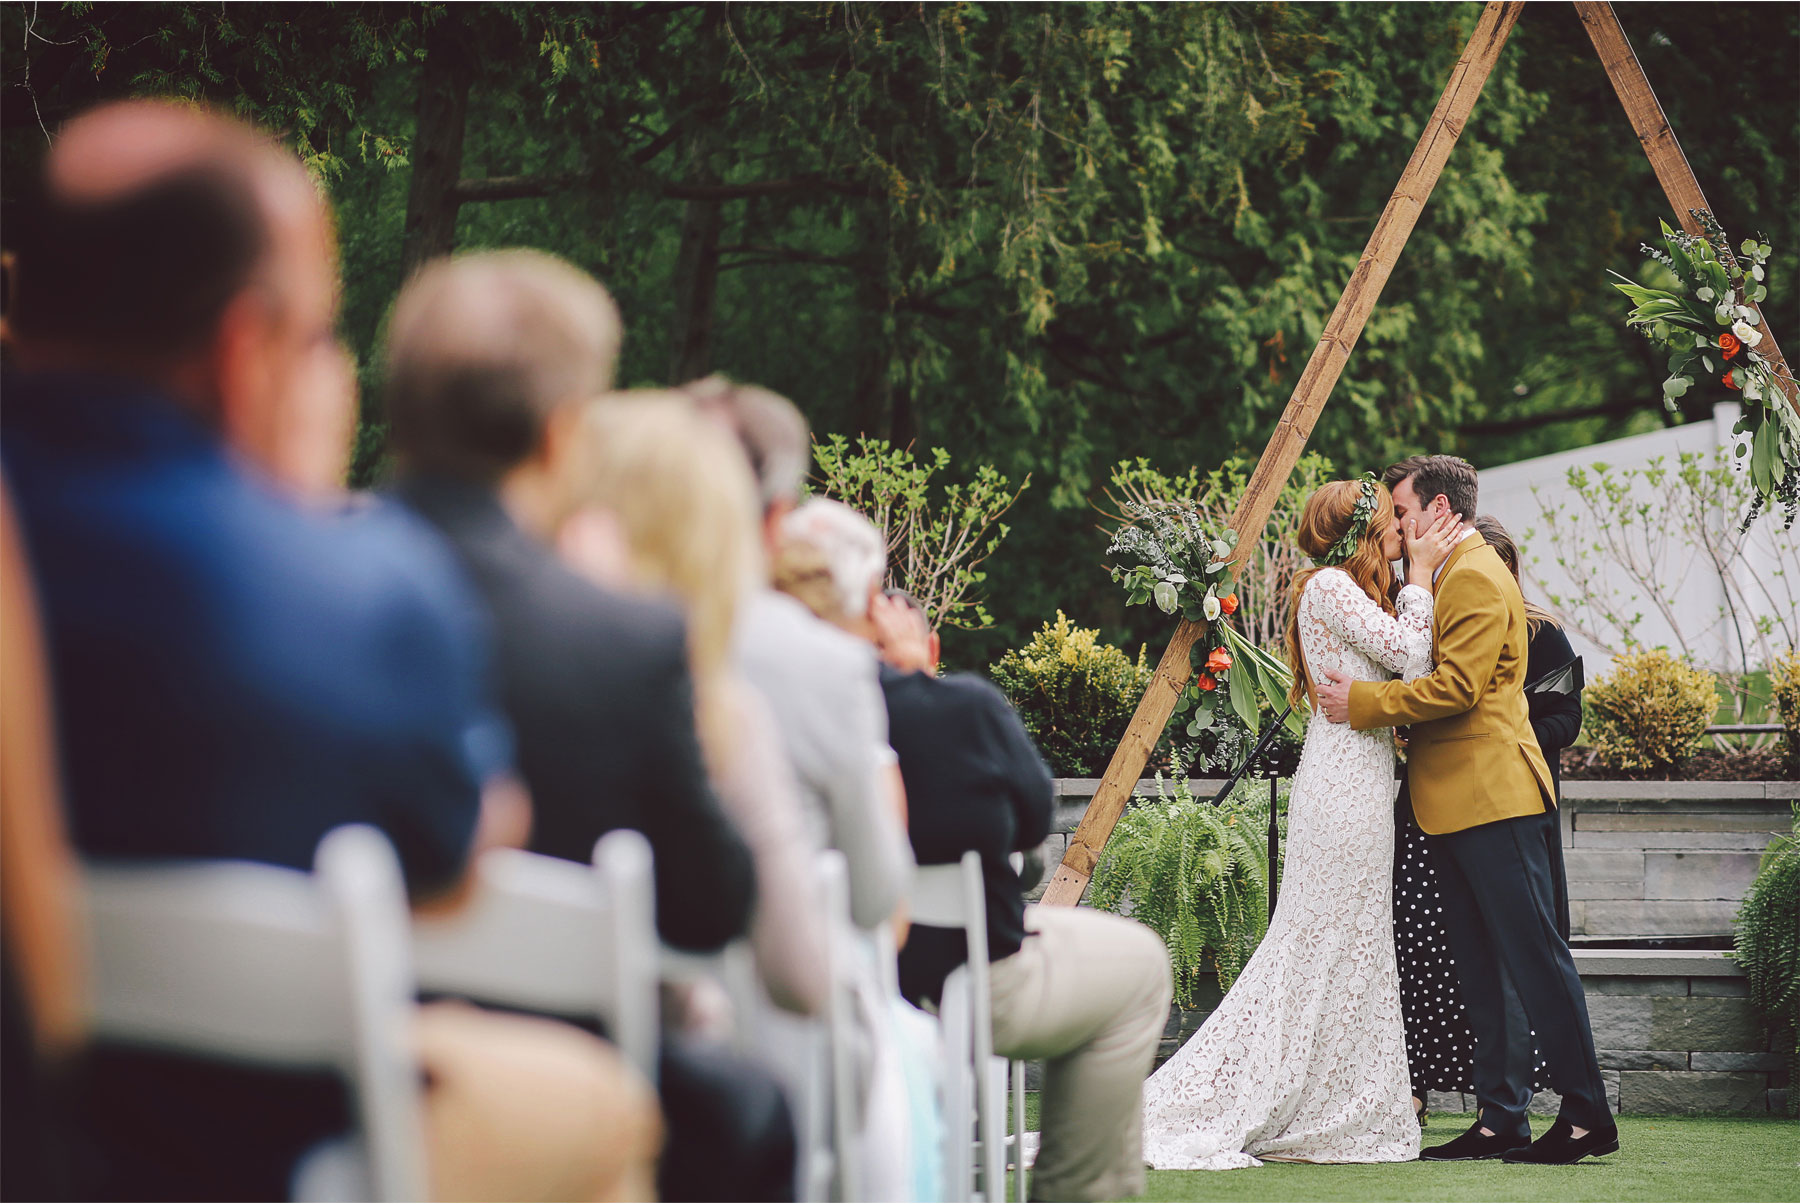 15-Minneapolis-Minnesota-Wedding-Photography-by-Andrew-Vick-Photography-Hutton-House-Outdoor-Ceremony-Vows-Mustard-Suit-Bohemian-First-Kiss-Kelsey-and-Matt.jpg